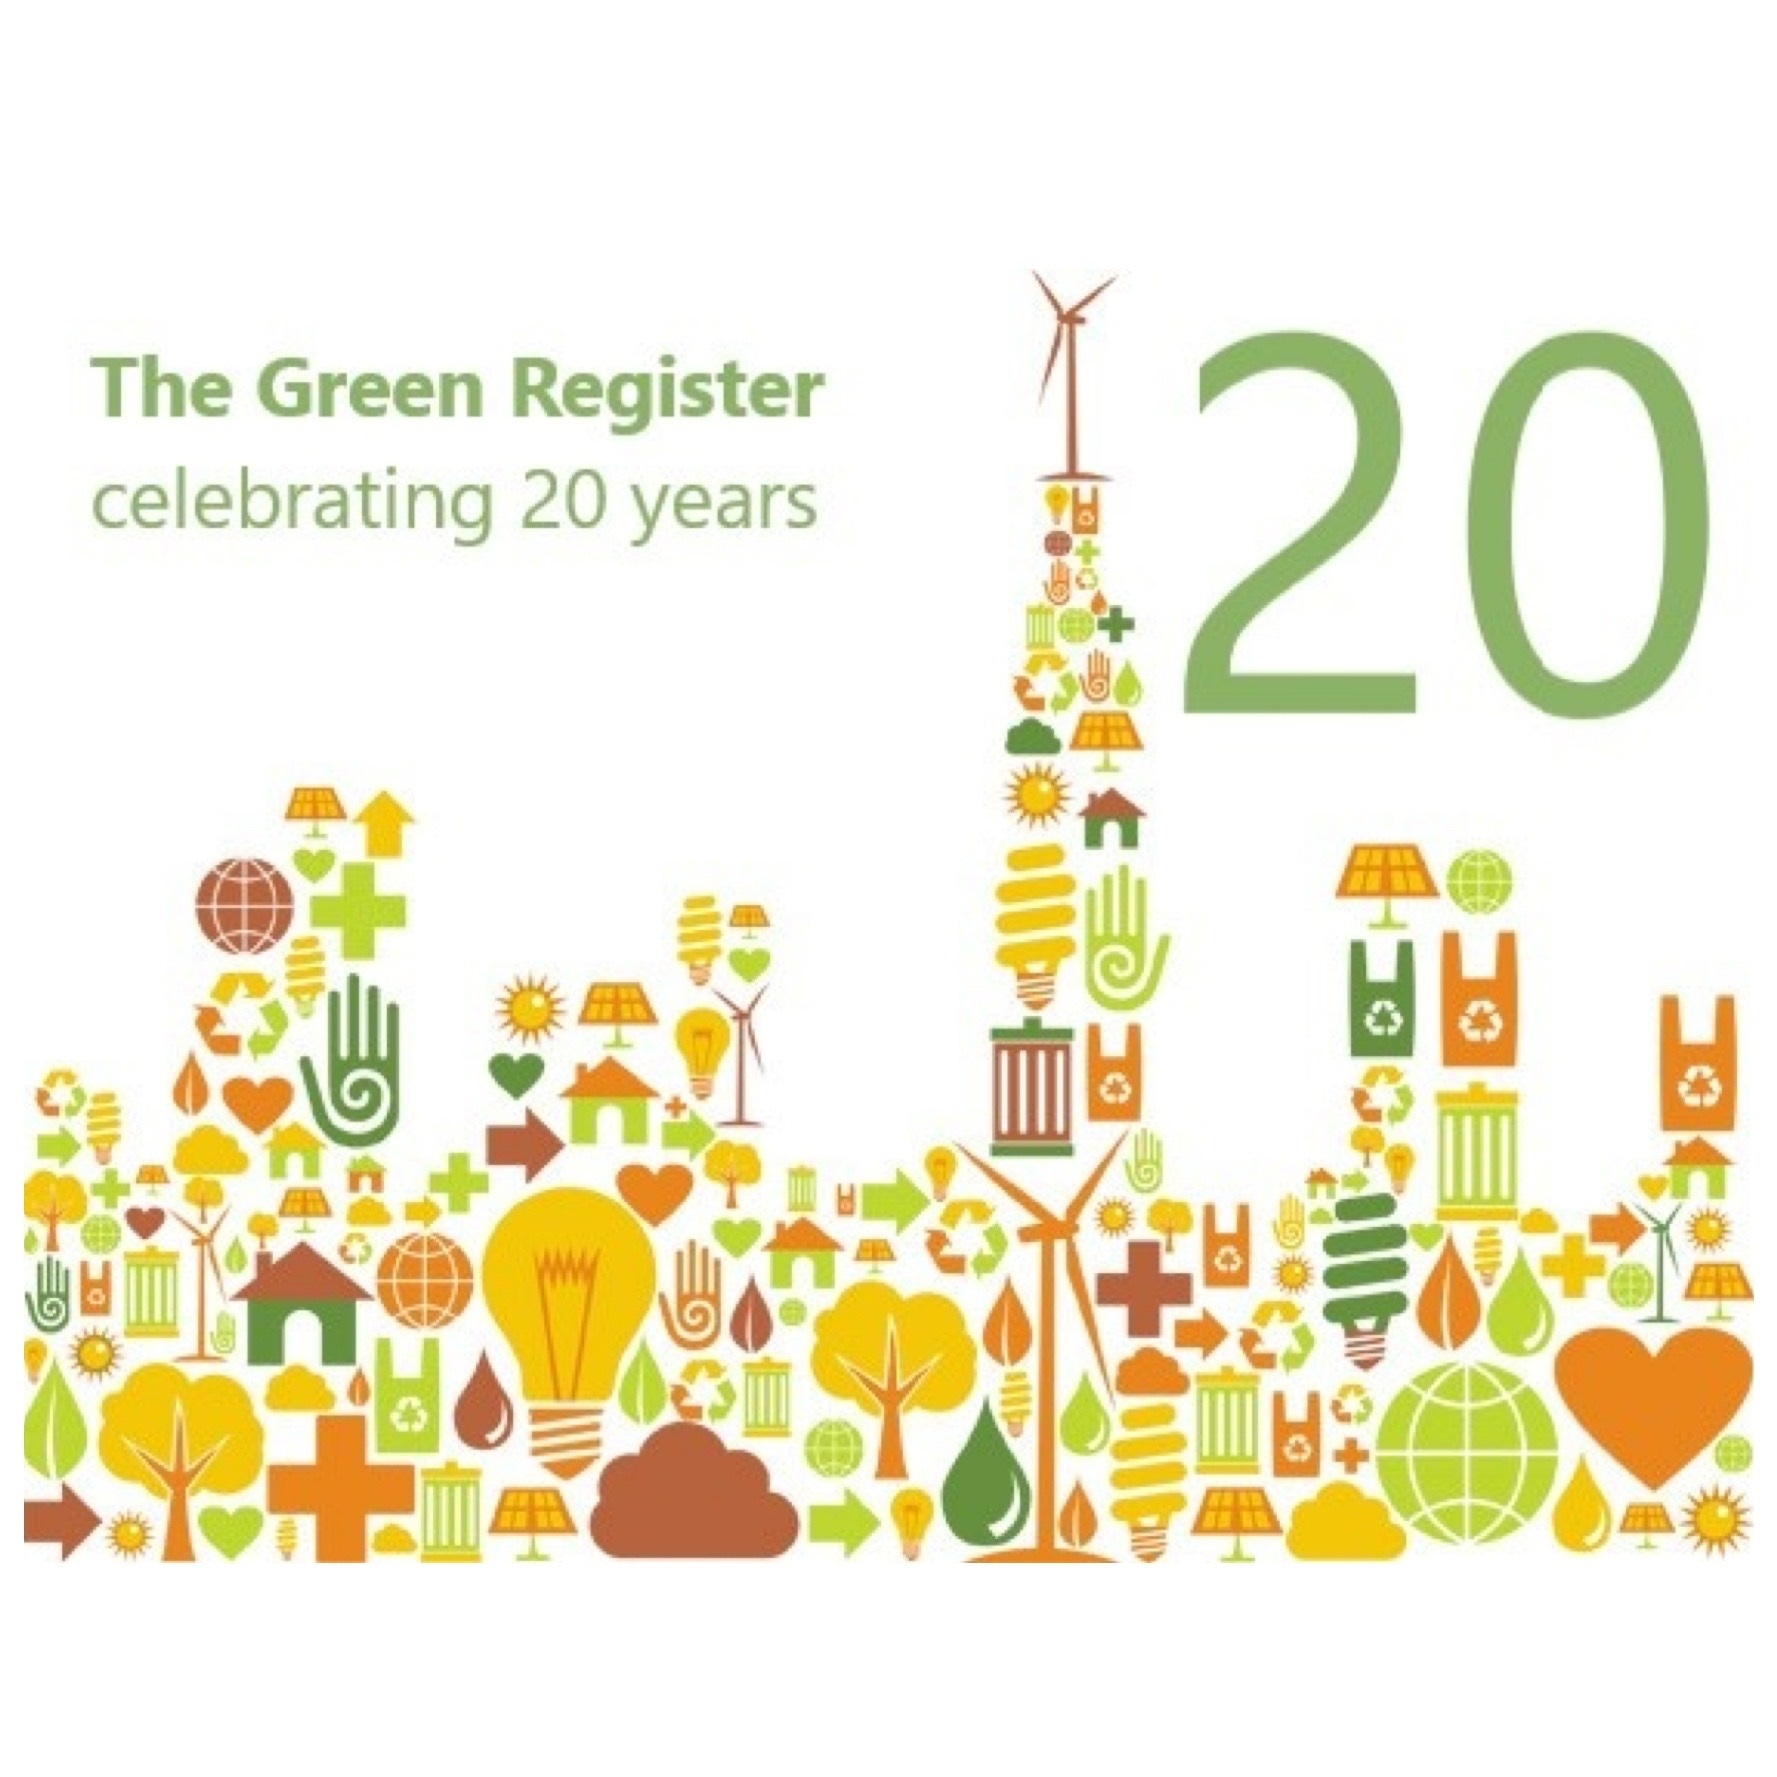 The Green Register - celebrating 20 years!